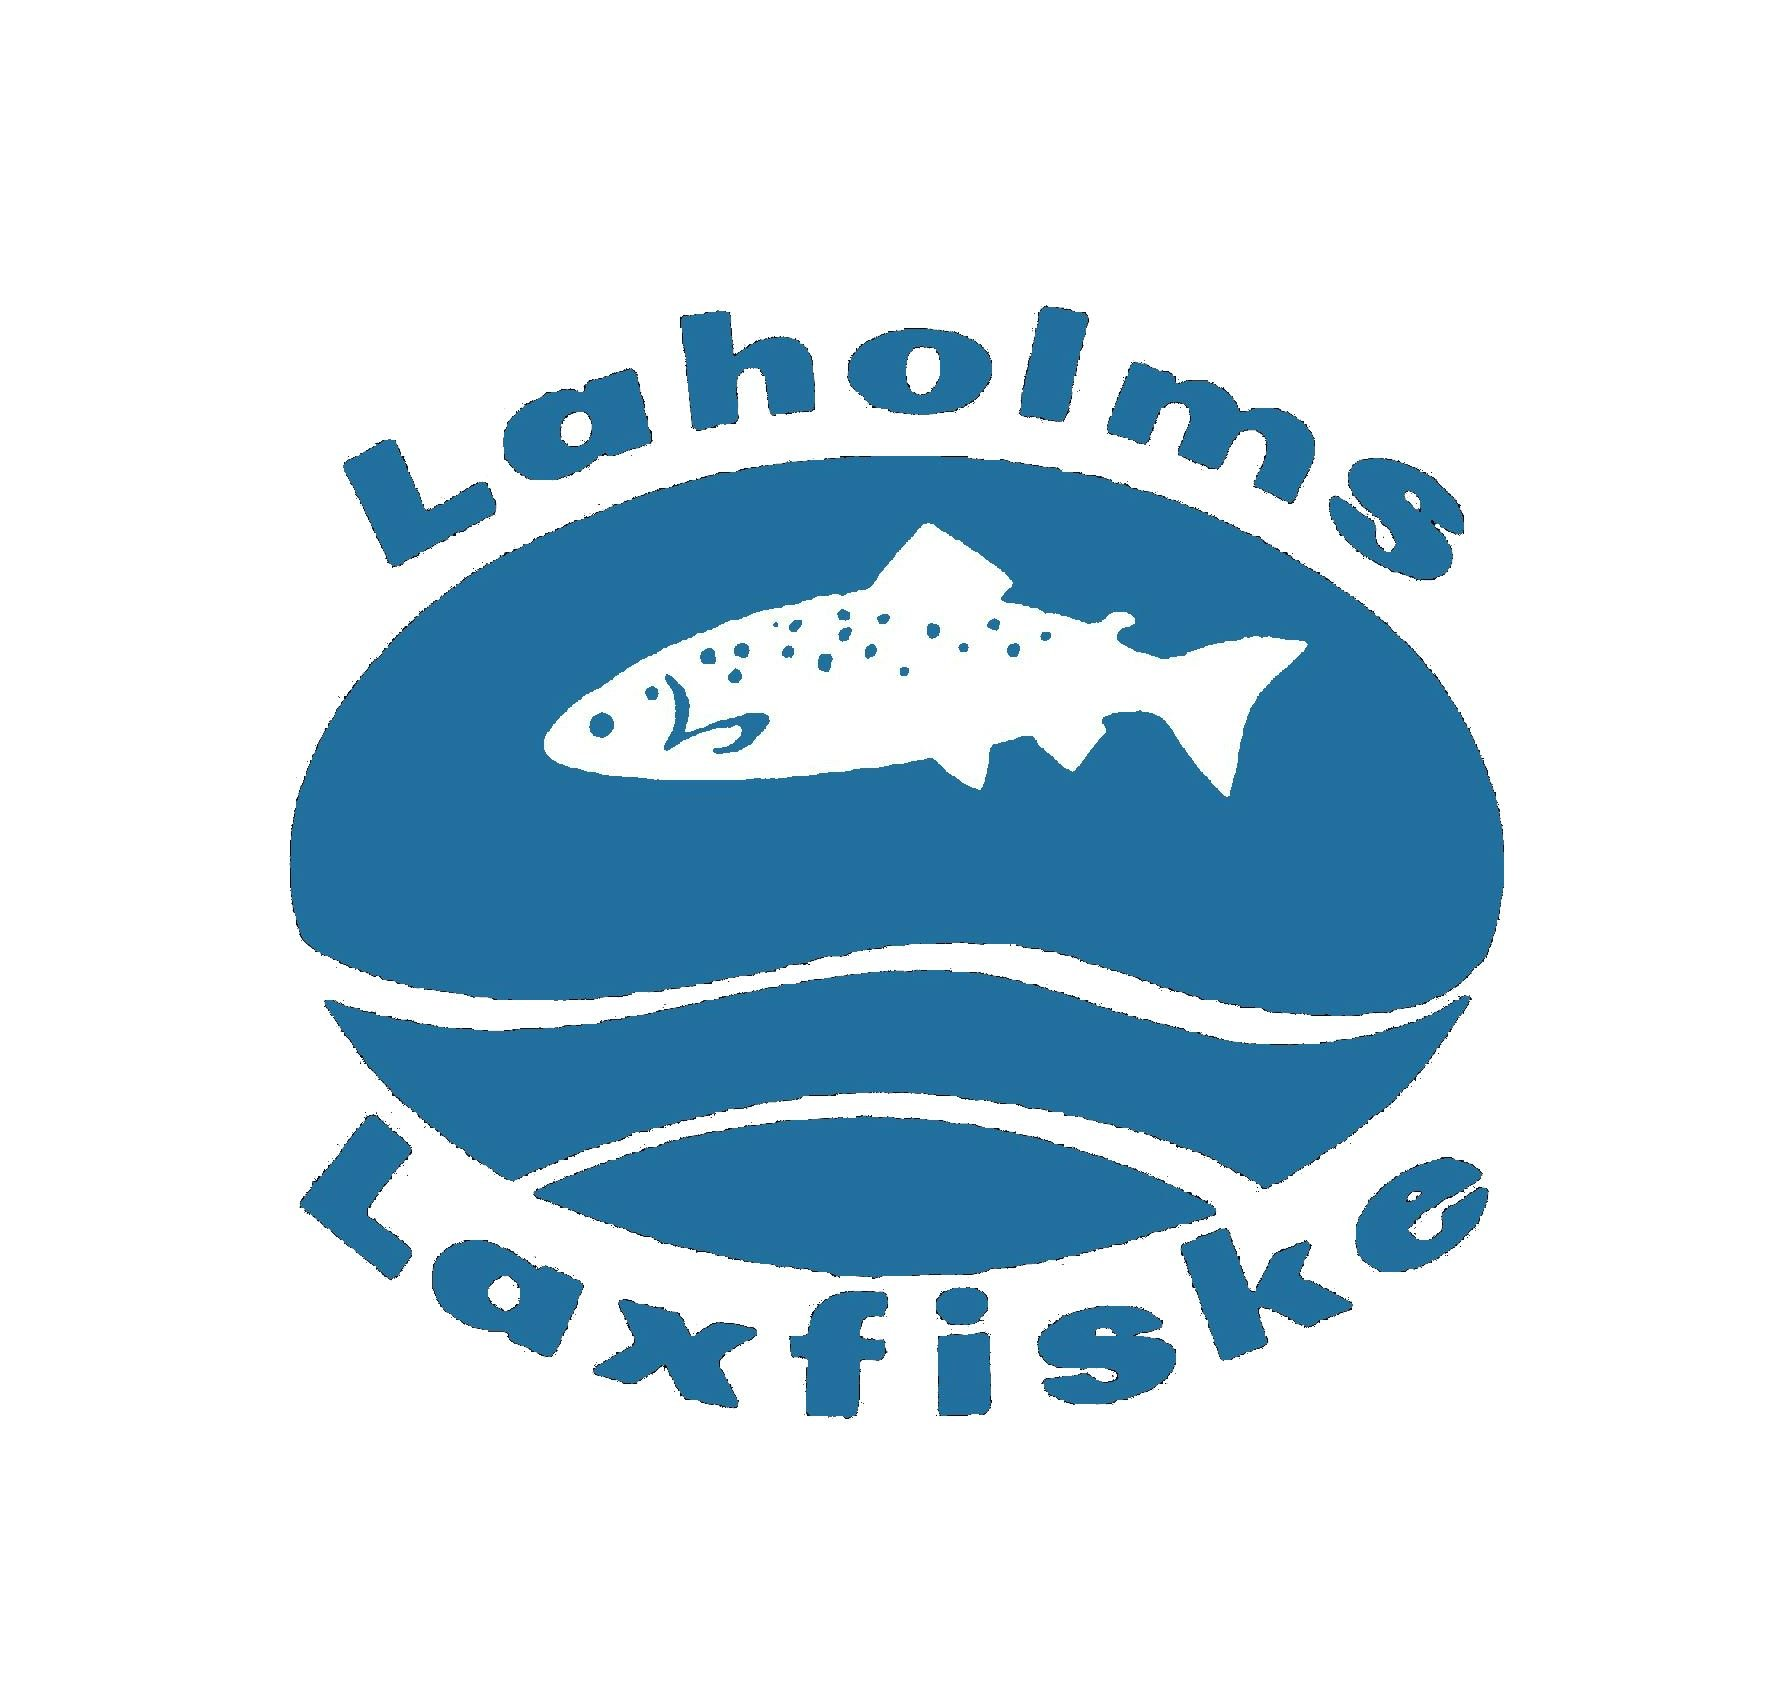 Day Fishing Permit, Laholms Laxfiske - Relax Fishing Sweden